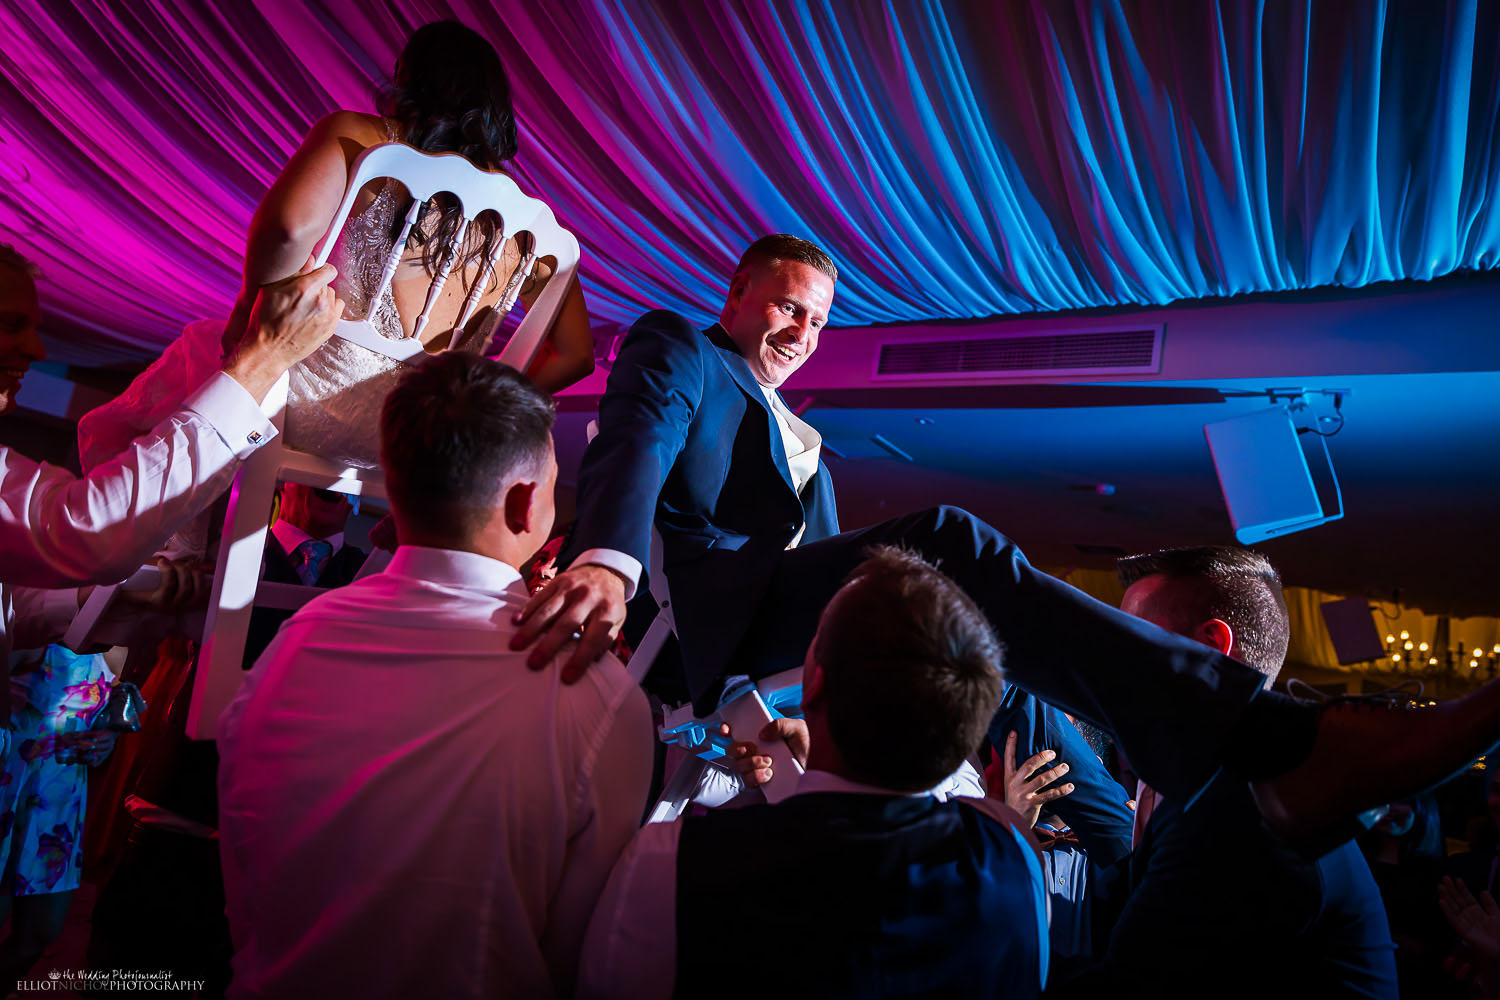 Bride and groom are lifted in their seats in the air during their wedding reception party. Photo by Elliot Nichol Photography.